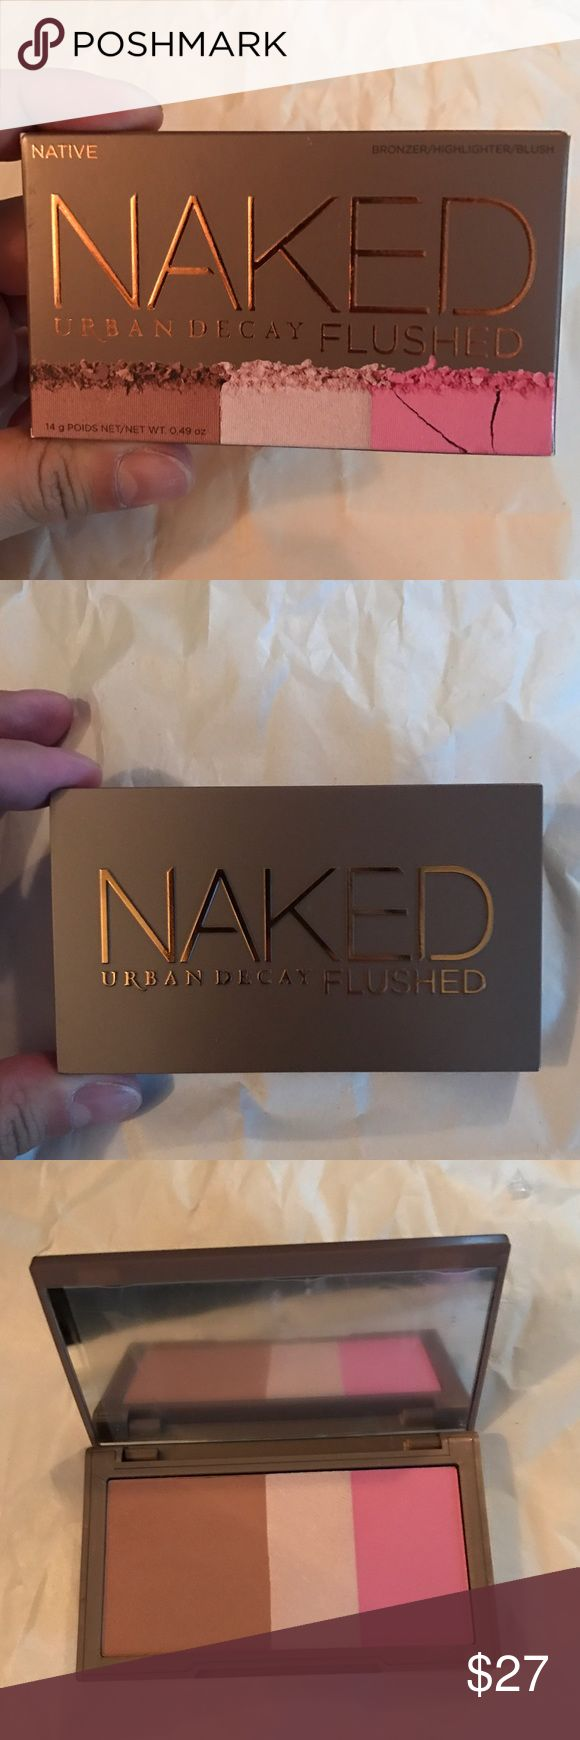 Urban Decay Naked Flushed in Native Brand new in box Urban Decay Naked Flushed in limited edition Native. Urban Decay Makeup Blush